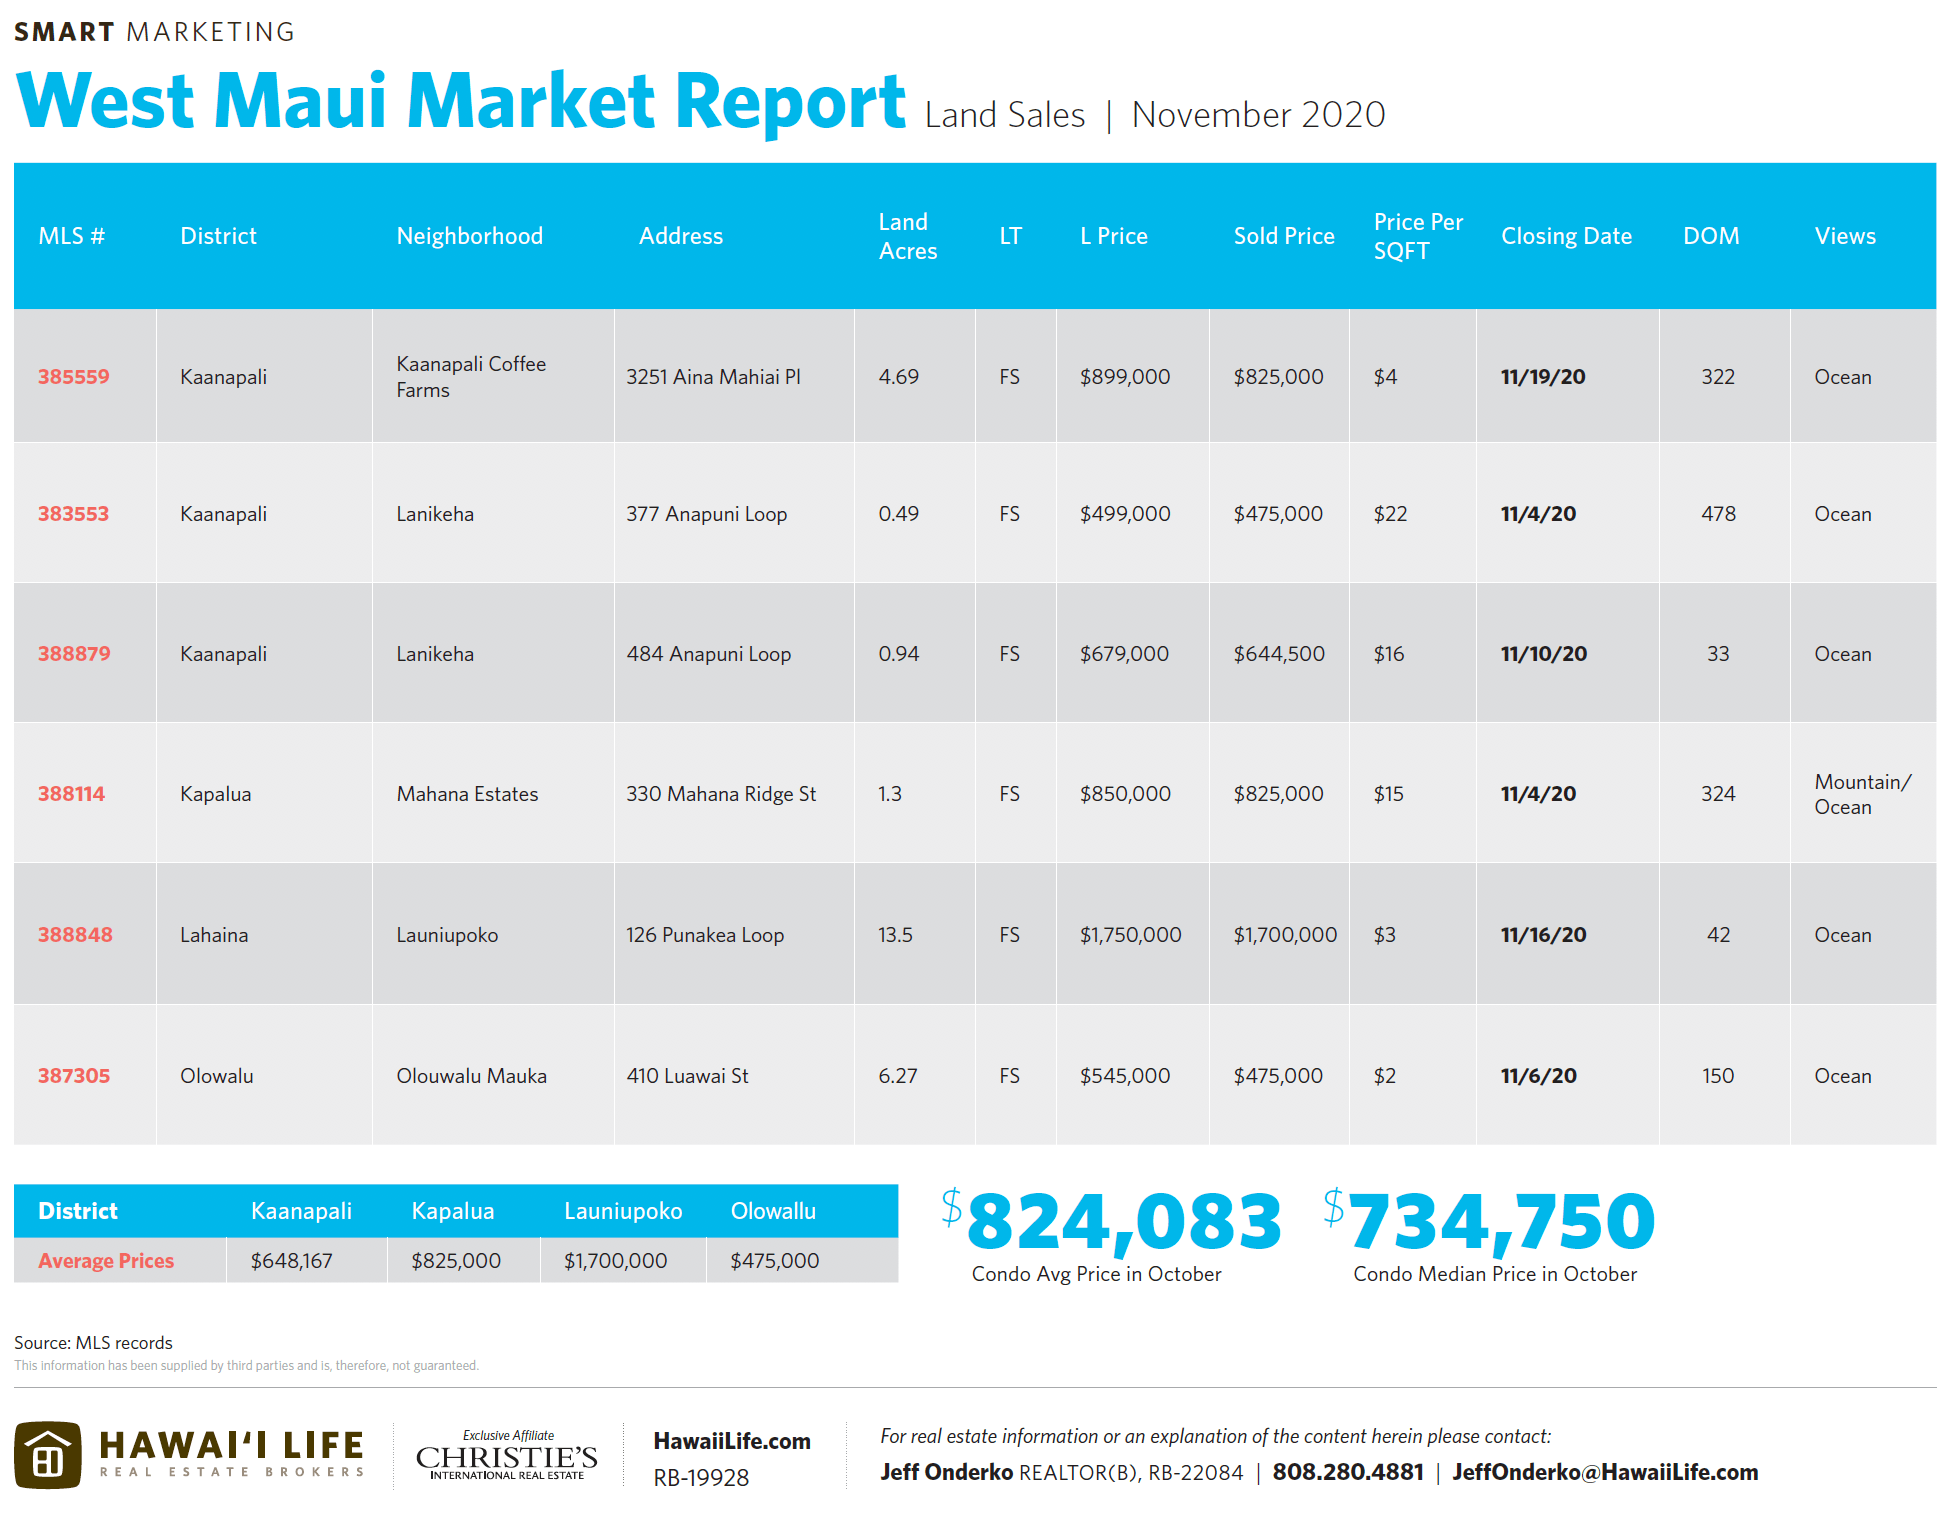 west maui land sales november 2020